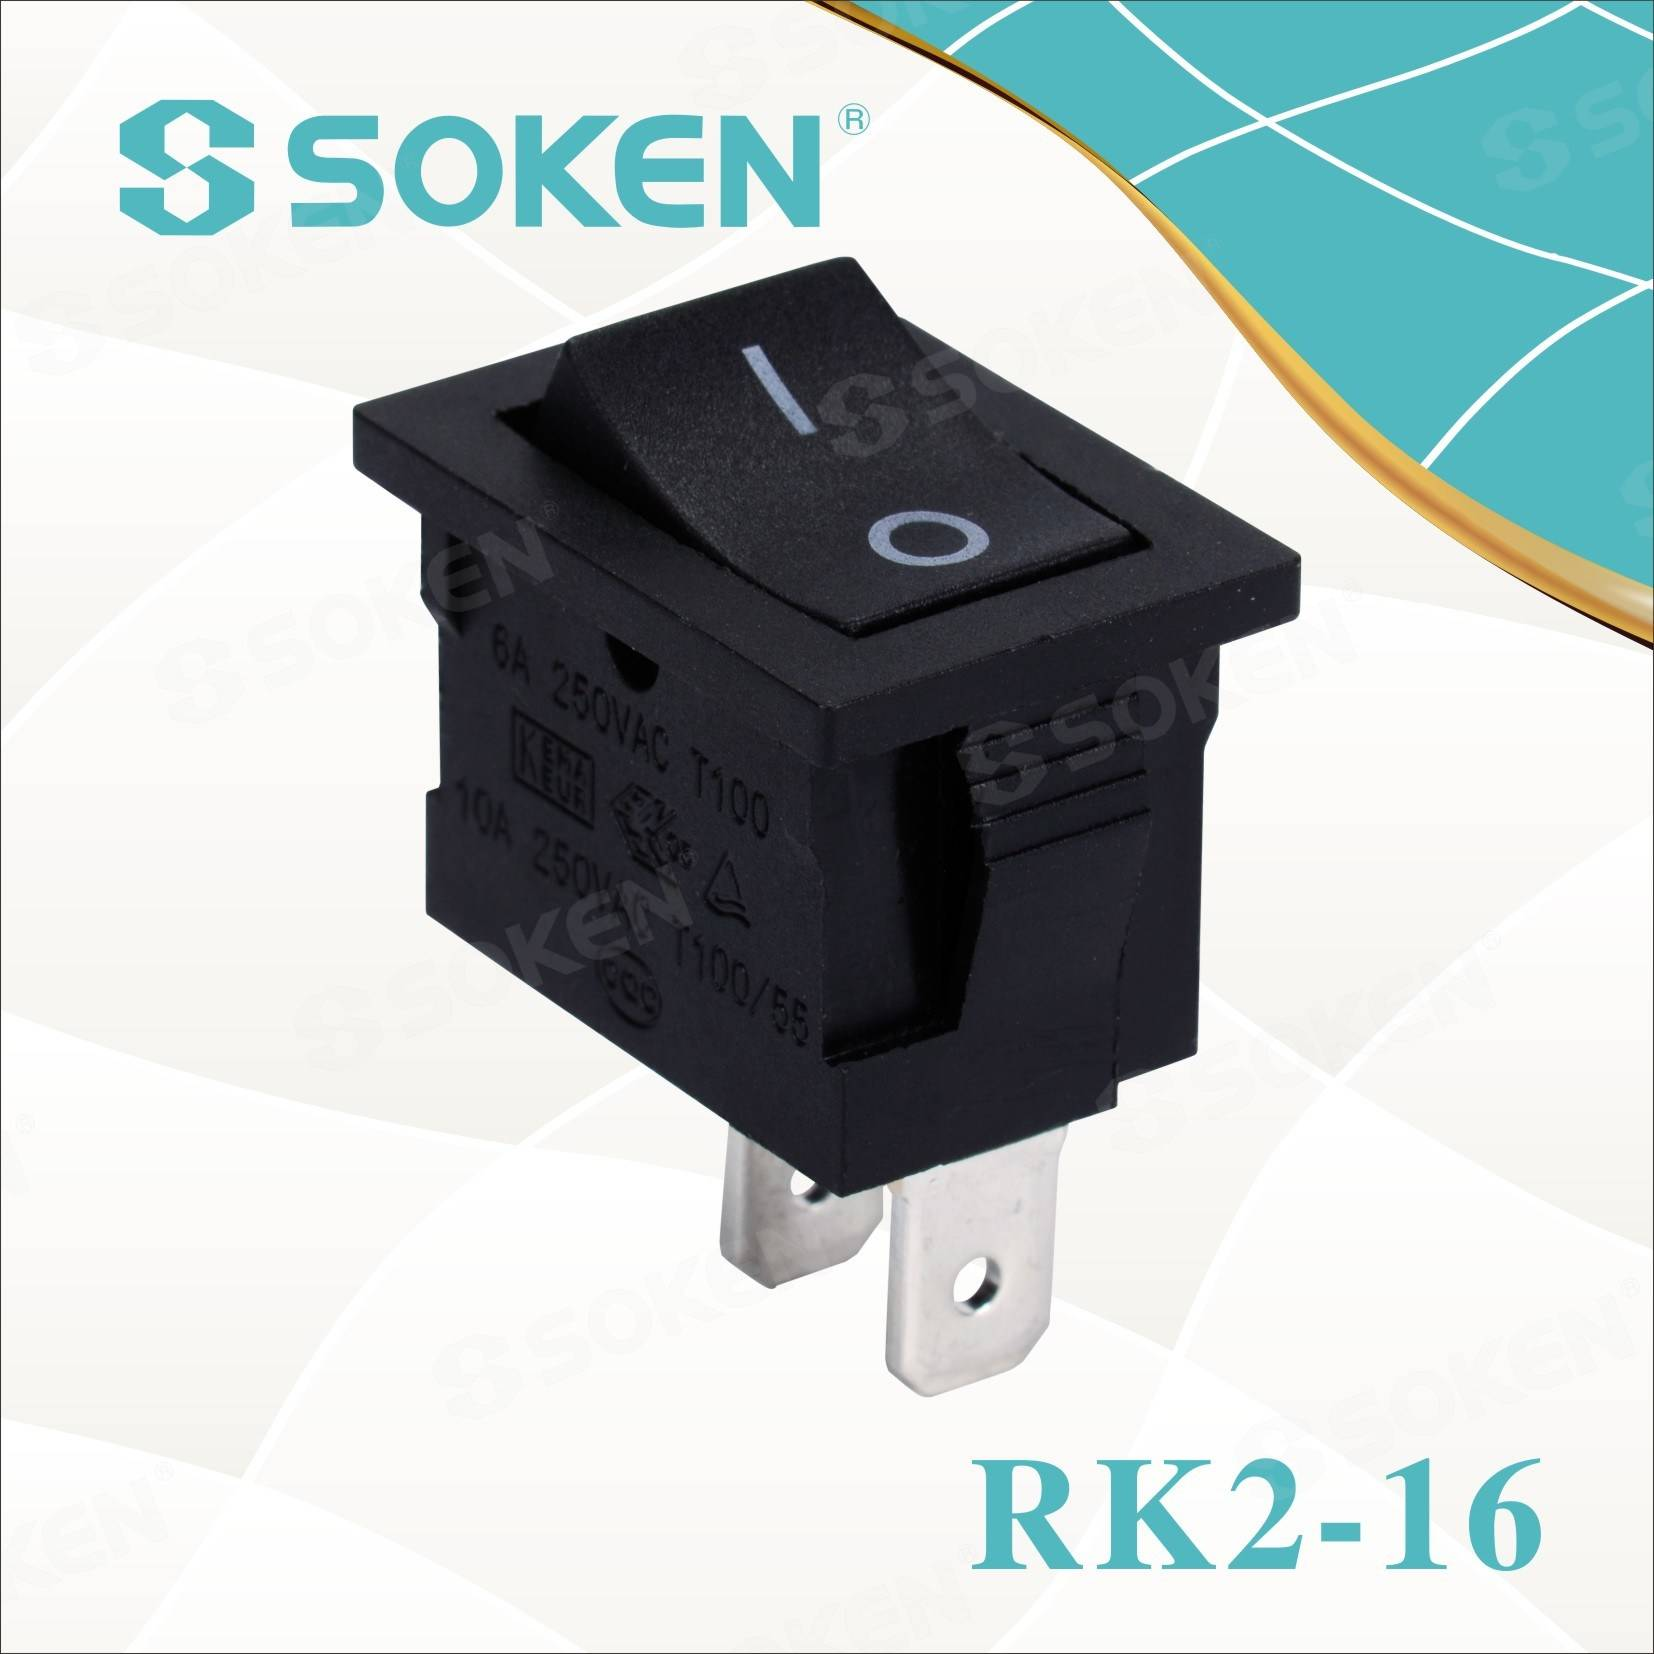 Sokne Rk2-16 1X2 B/B on off Rocker Switch